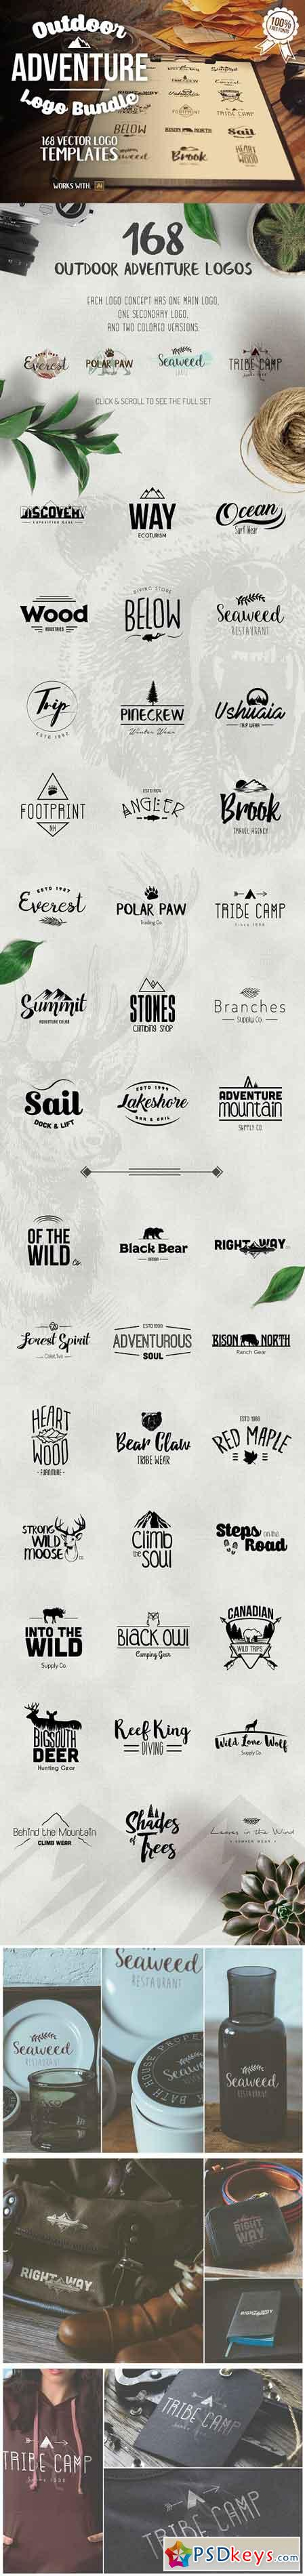 Outdoors Travel Branding Logo Bundle 1037869